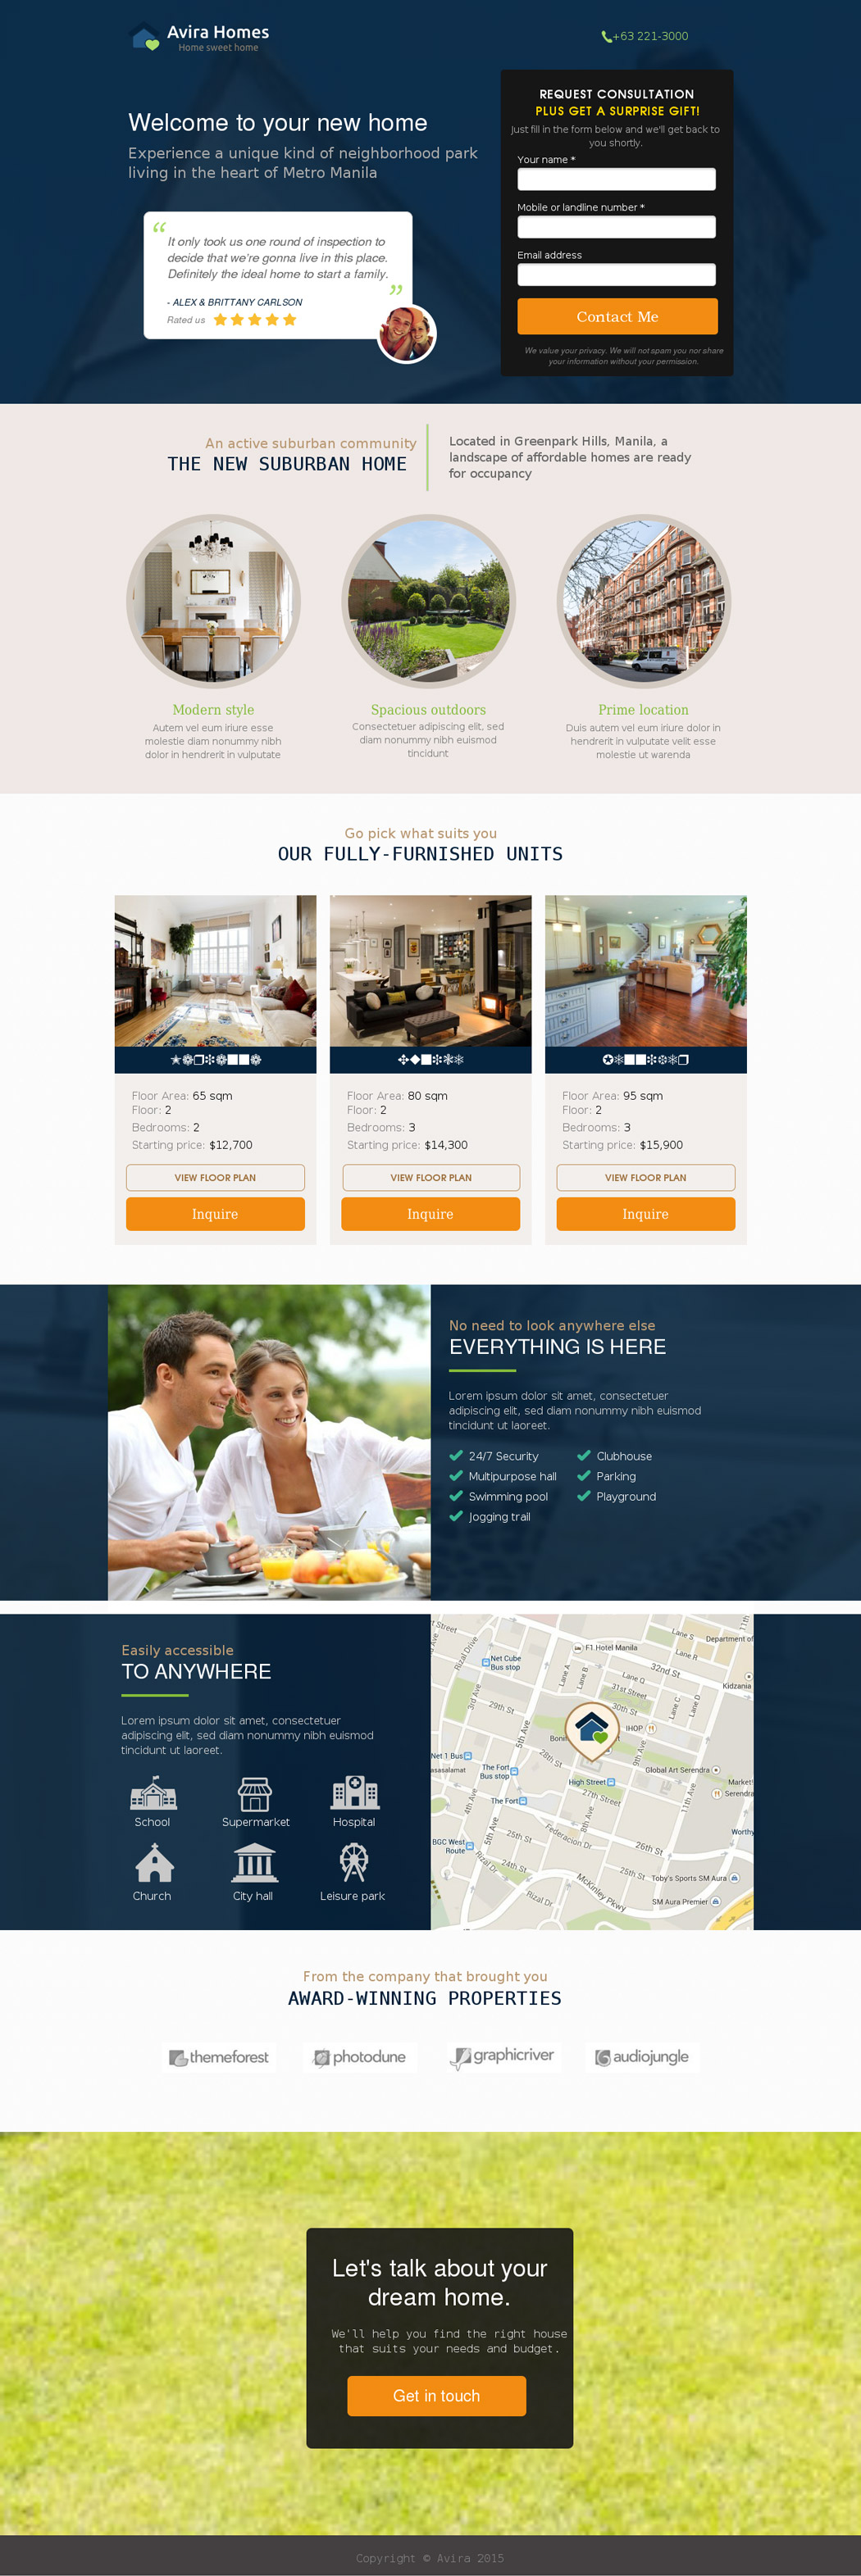 real estate landing page templates for your appraisal this is a landing page that would work well for someone selling multiple properties in a new suburban development for example from top to bottom